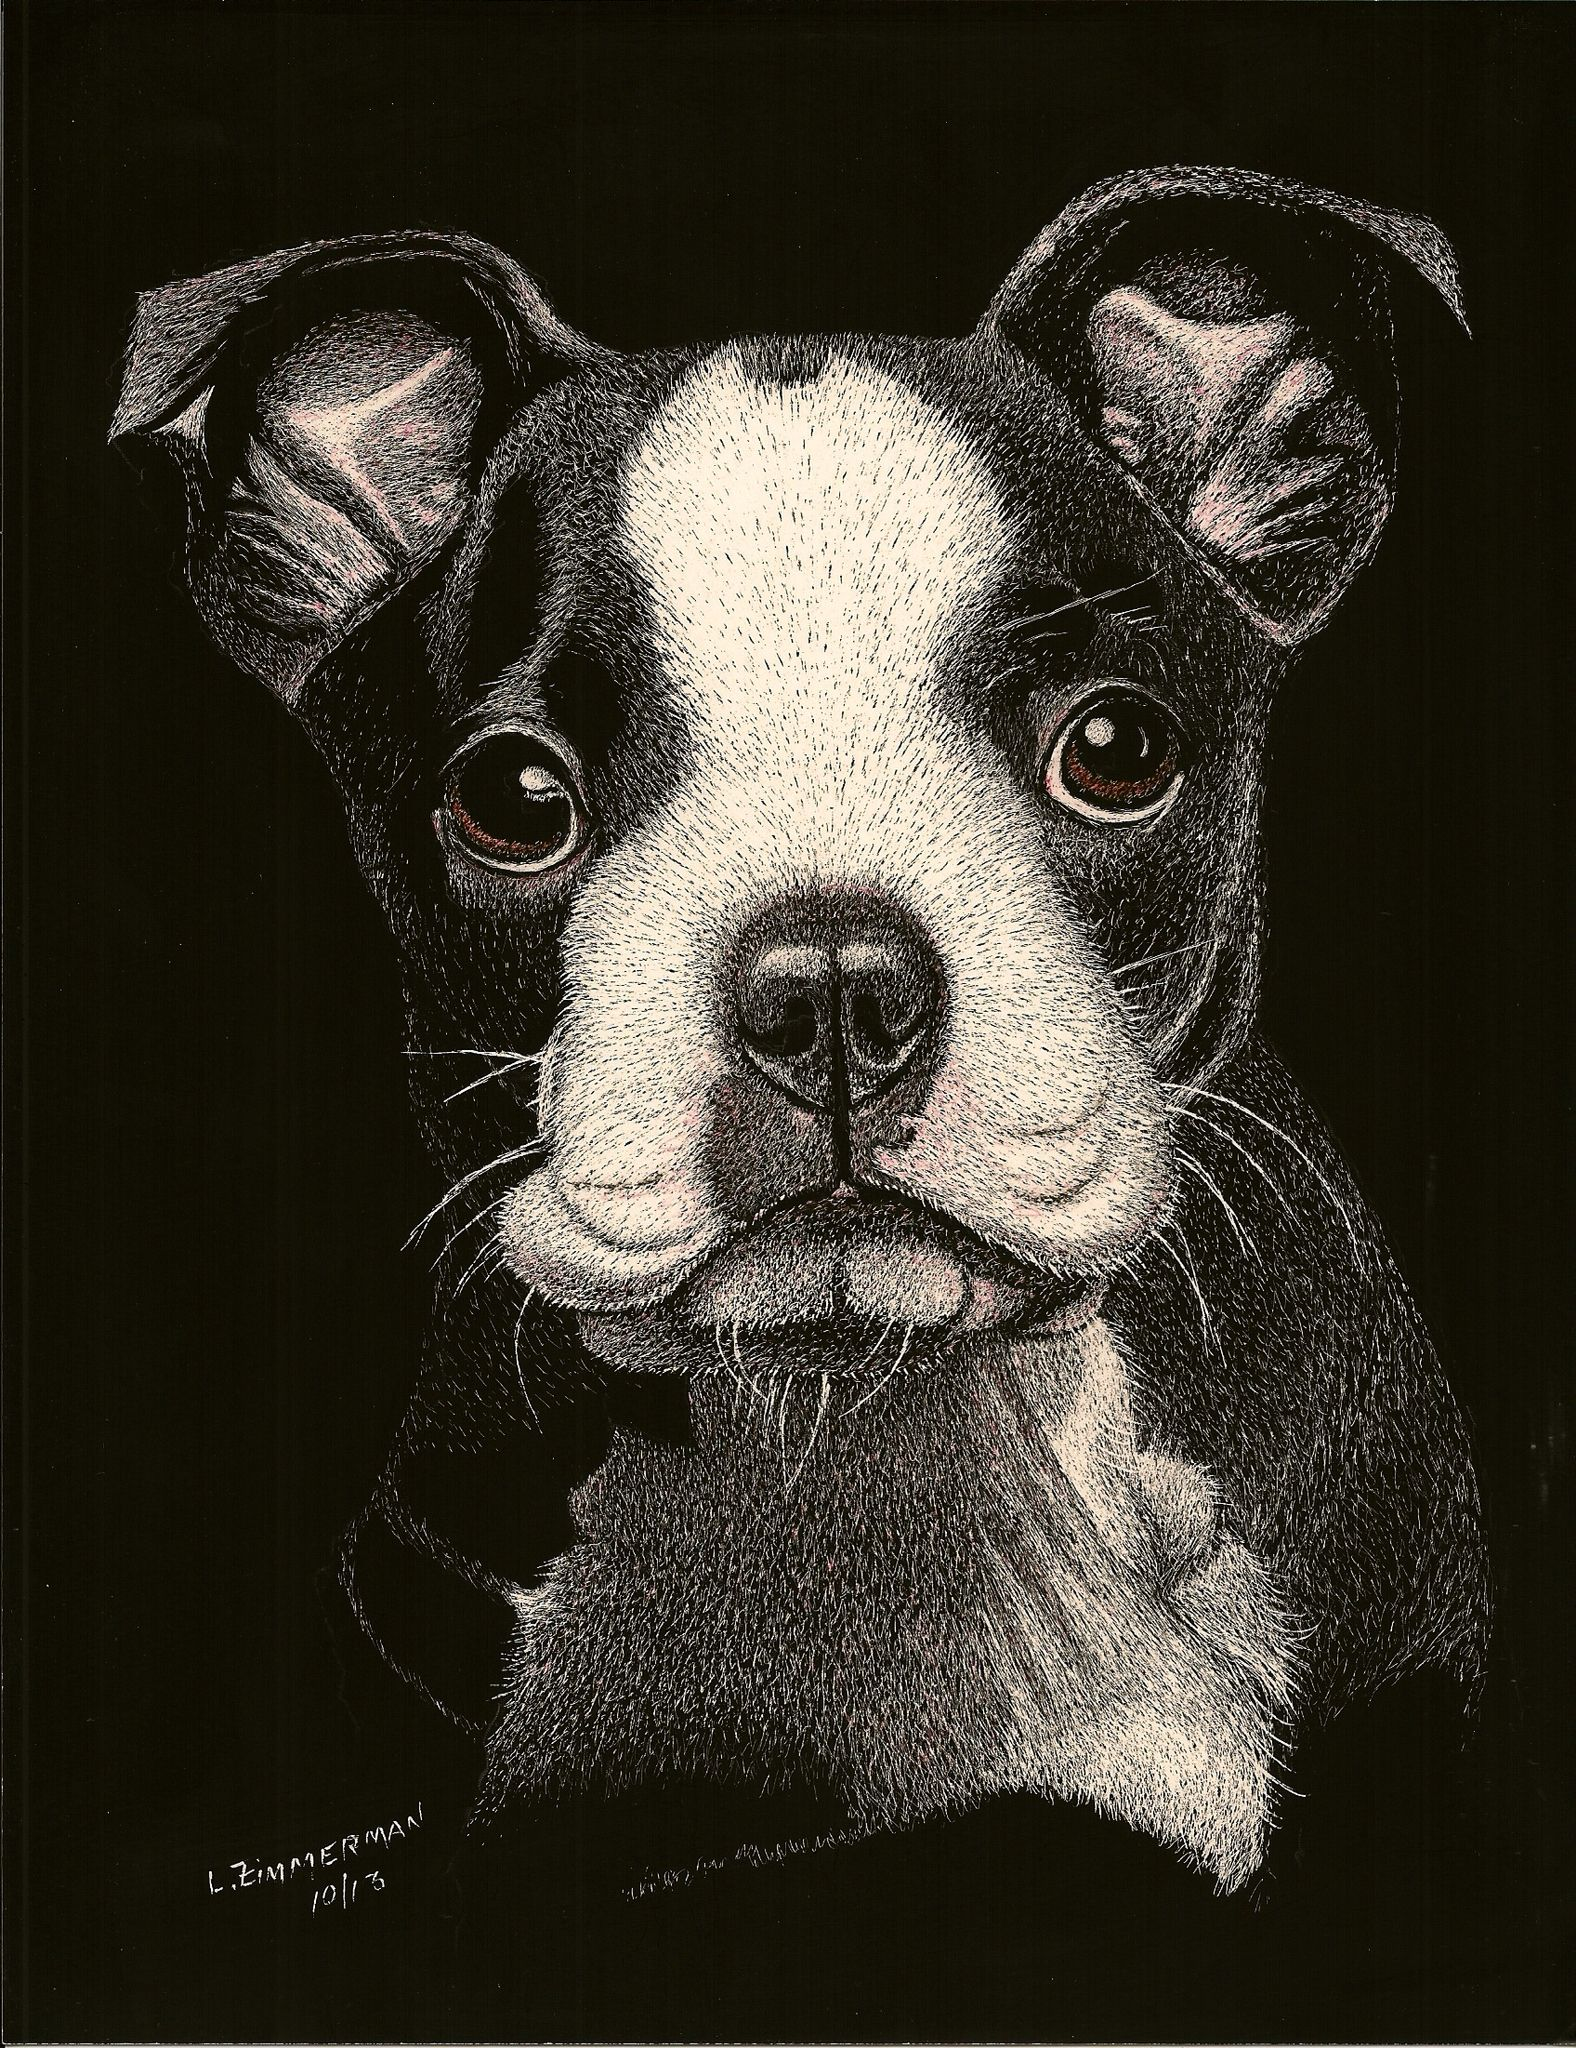 How To Find A Boston Terrier Puppy For Sale Dog Gonnit American